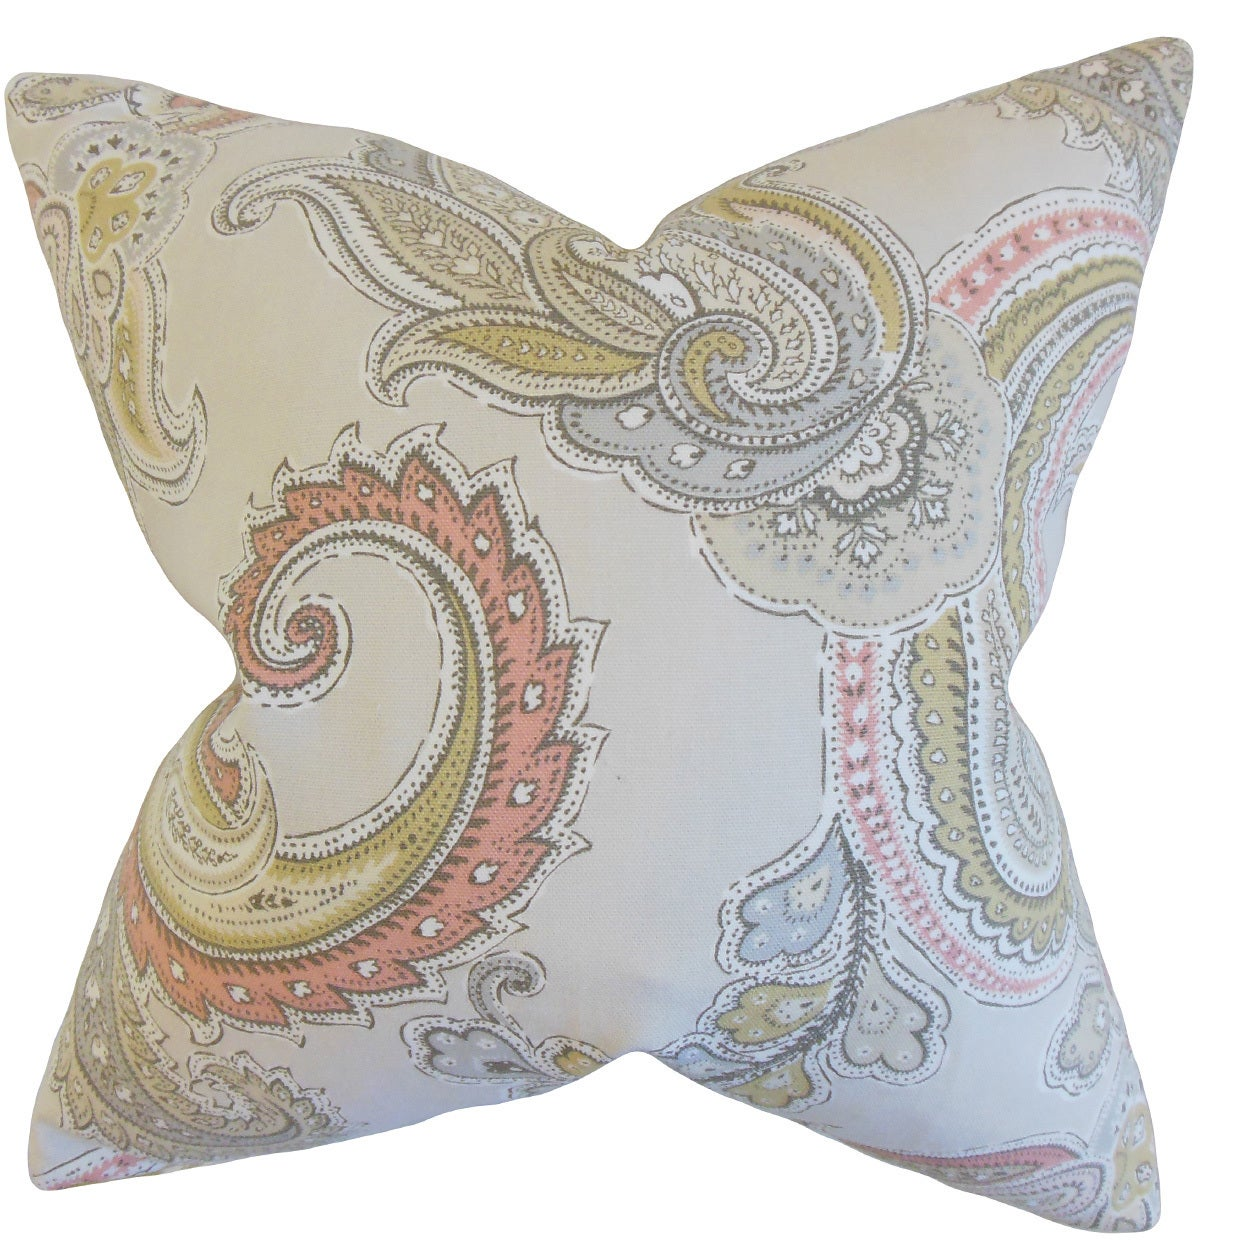 Shop Black Friday Deals On Kalani Paisley Throw Pillow Cover Clush Overstock 11961704